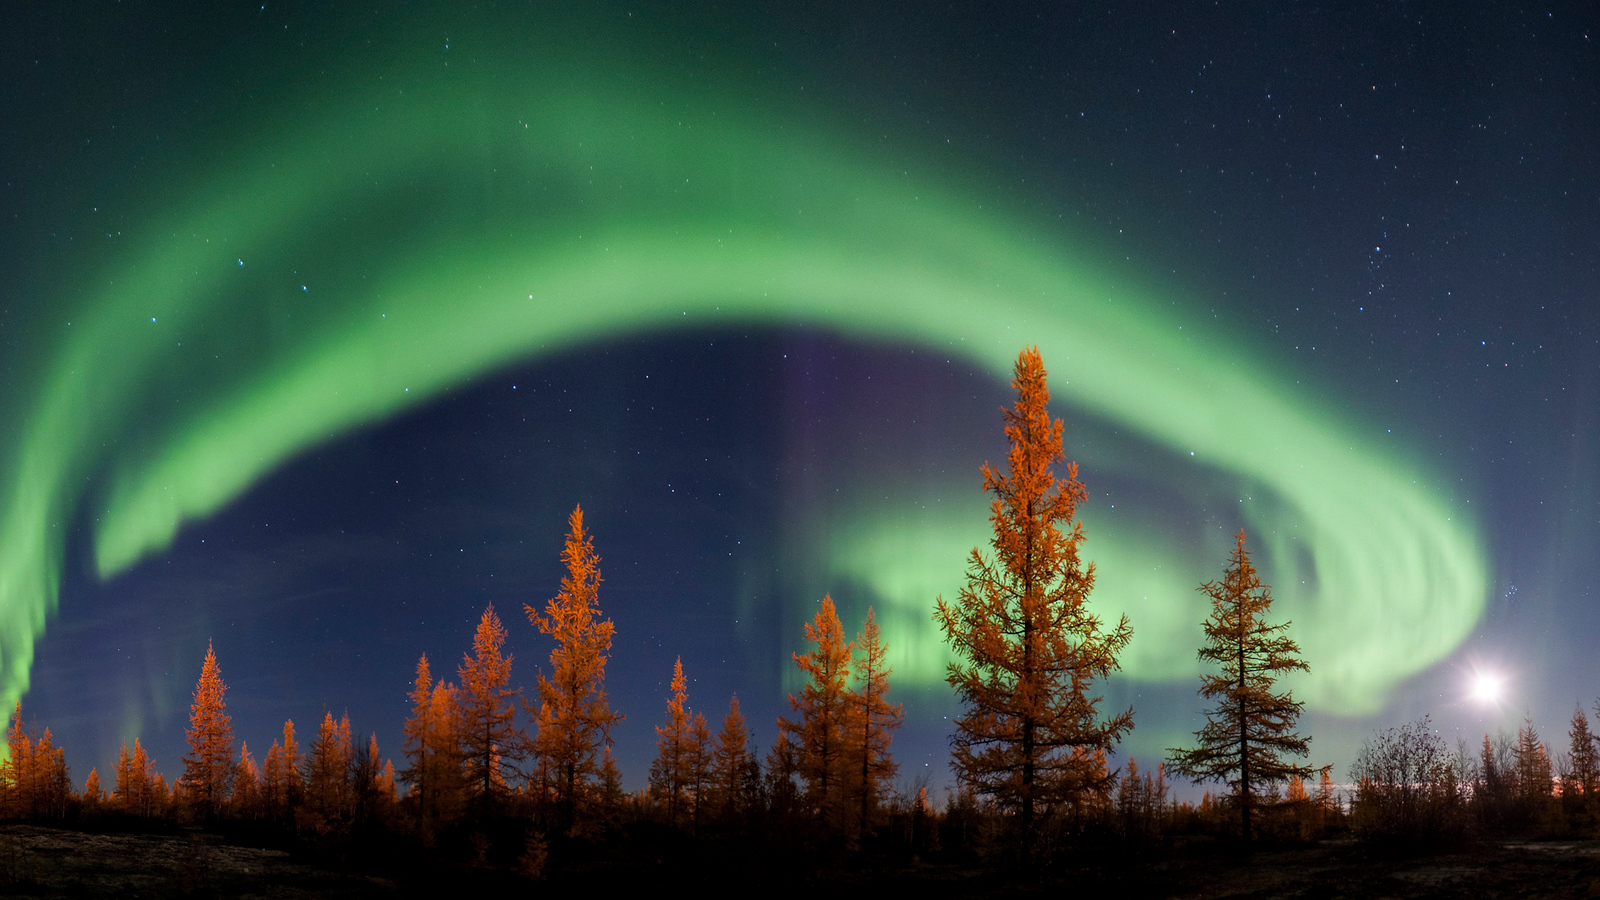 The 10 Best Places to See the Northern Lights - Russia